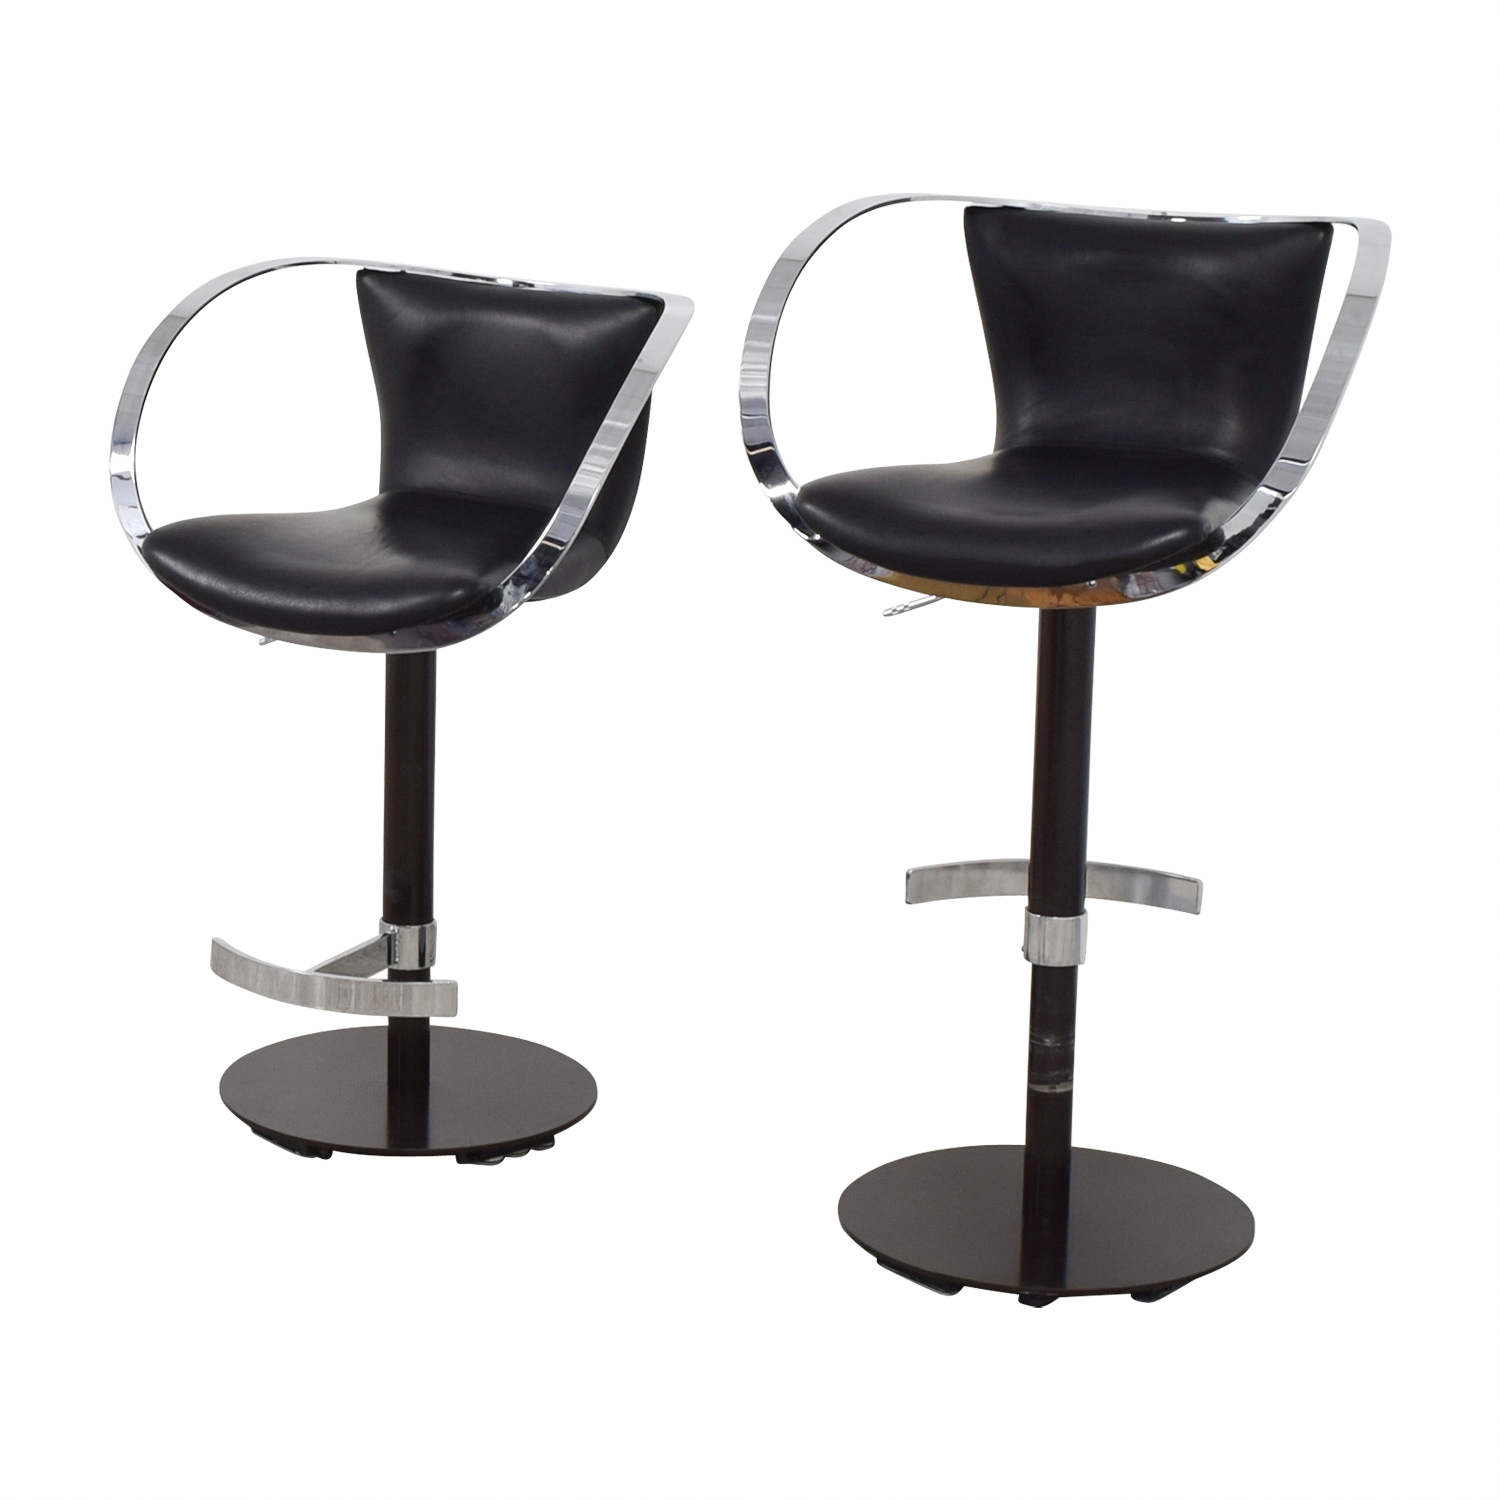 76% OFF - Crate & Barrel Crate & Barrel Black Leather and Chrome Adjustable  Kitchen Stools / Chairs